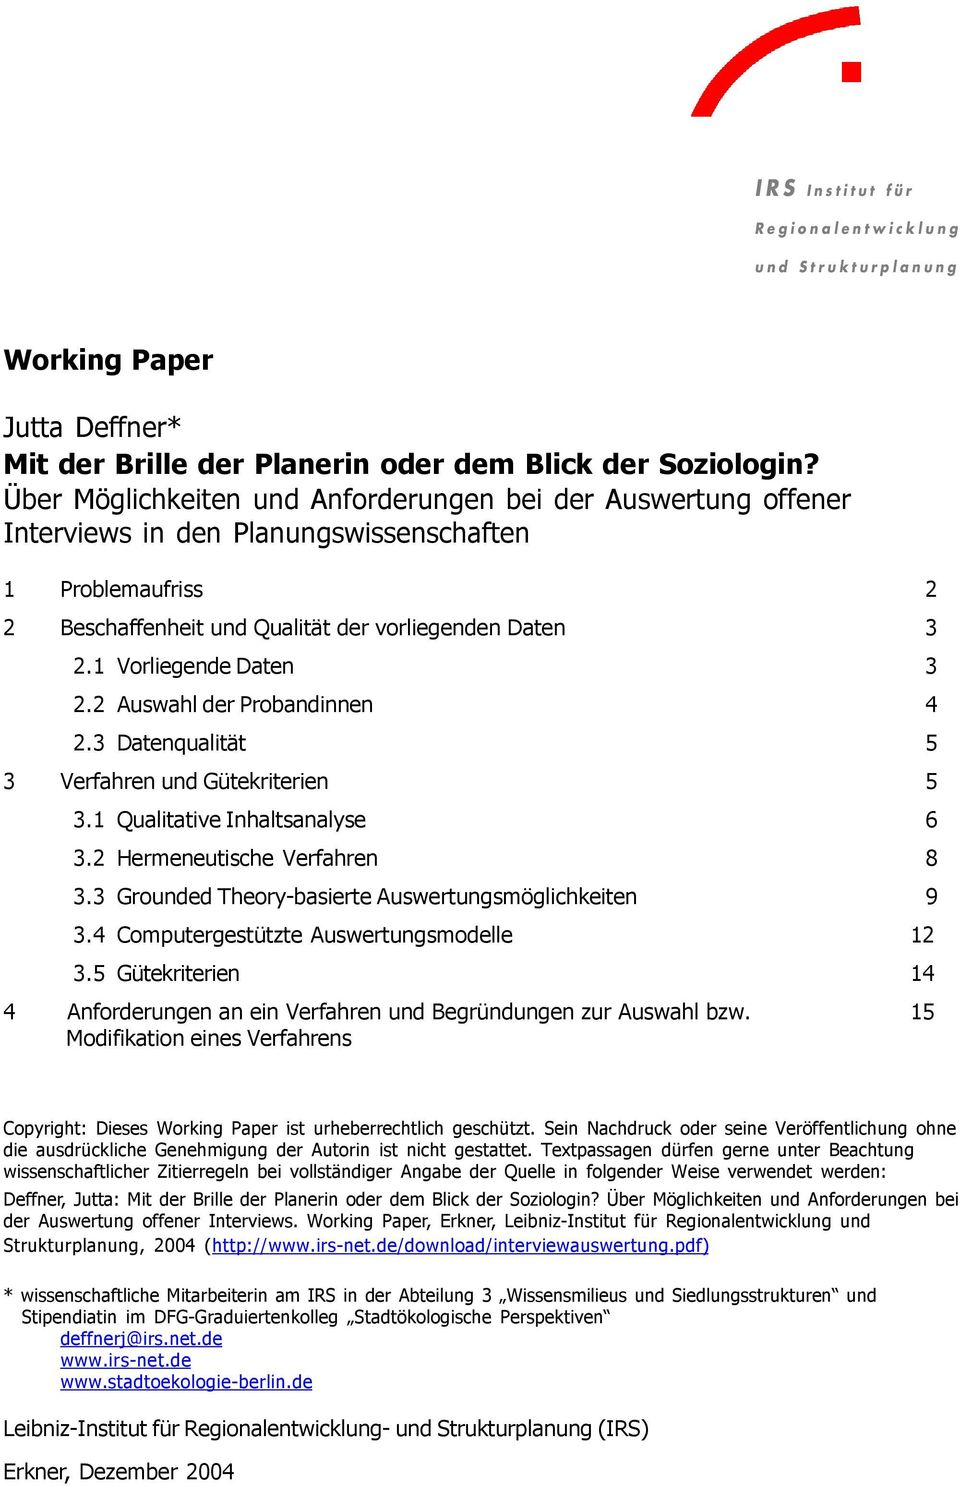 Working Paper. IRS Institut für - PDF